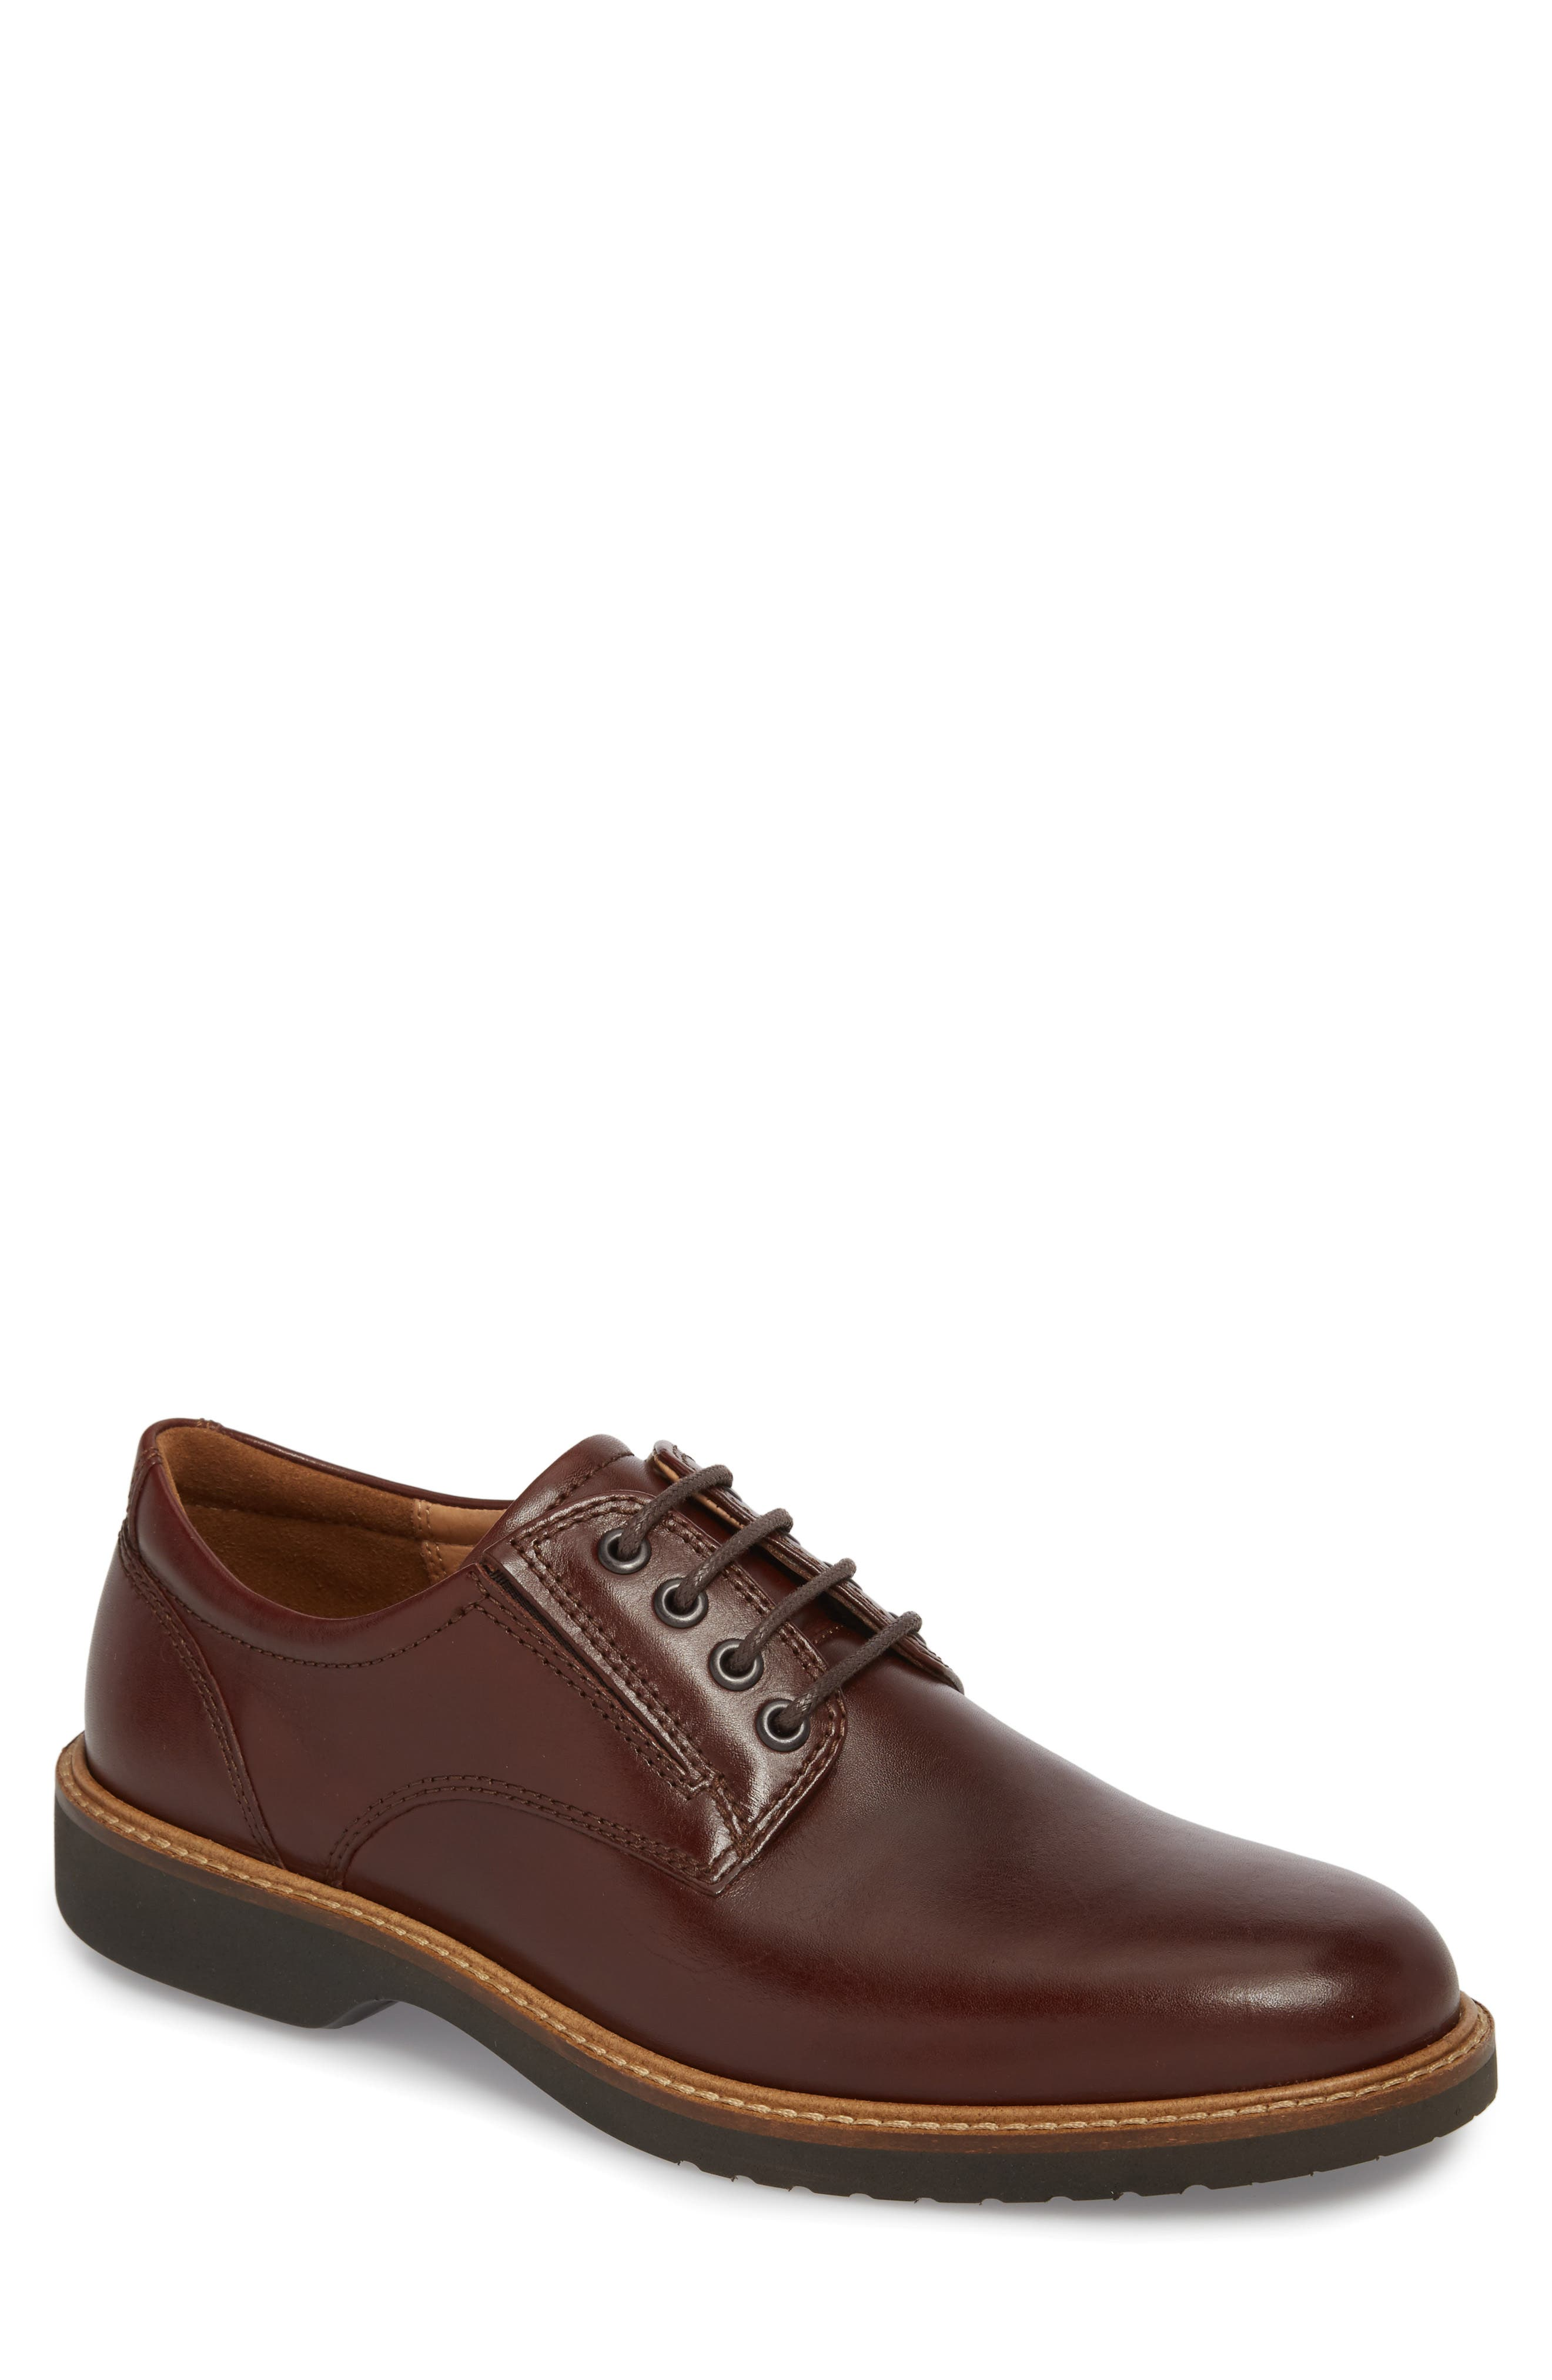 Ian Casual Plain Toe Derby,                         Main,                         color, Mink Leather